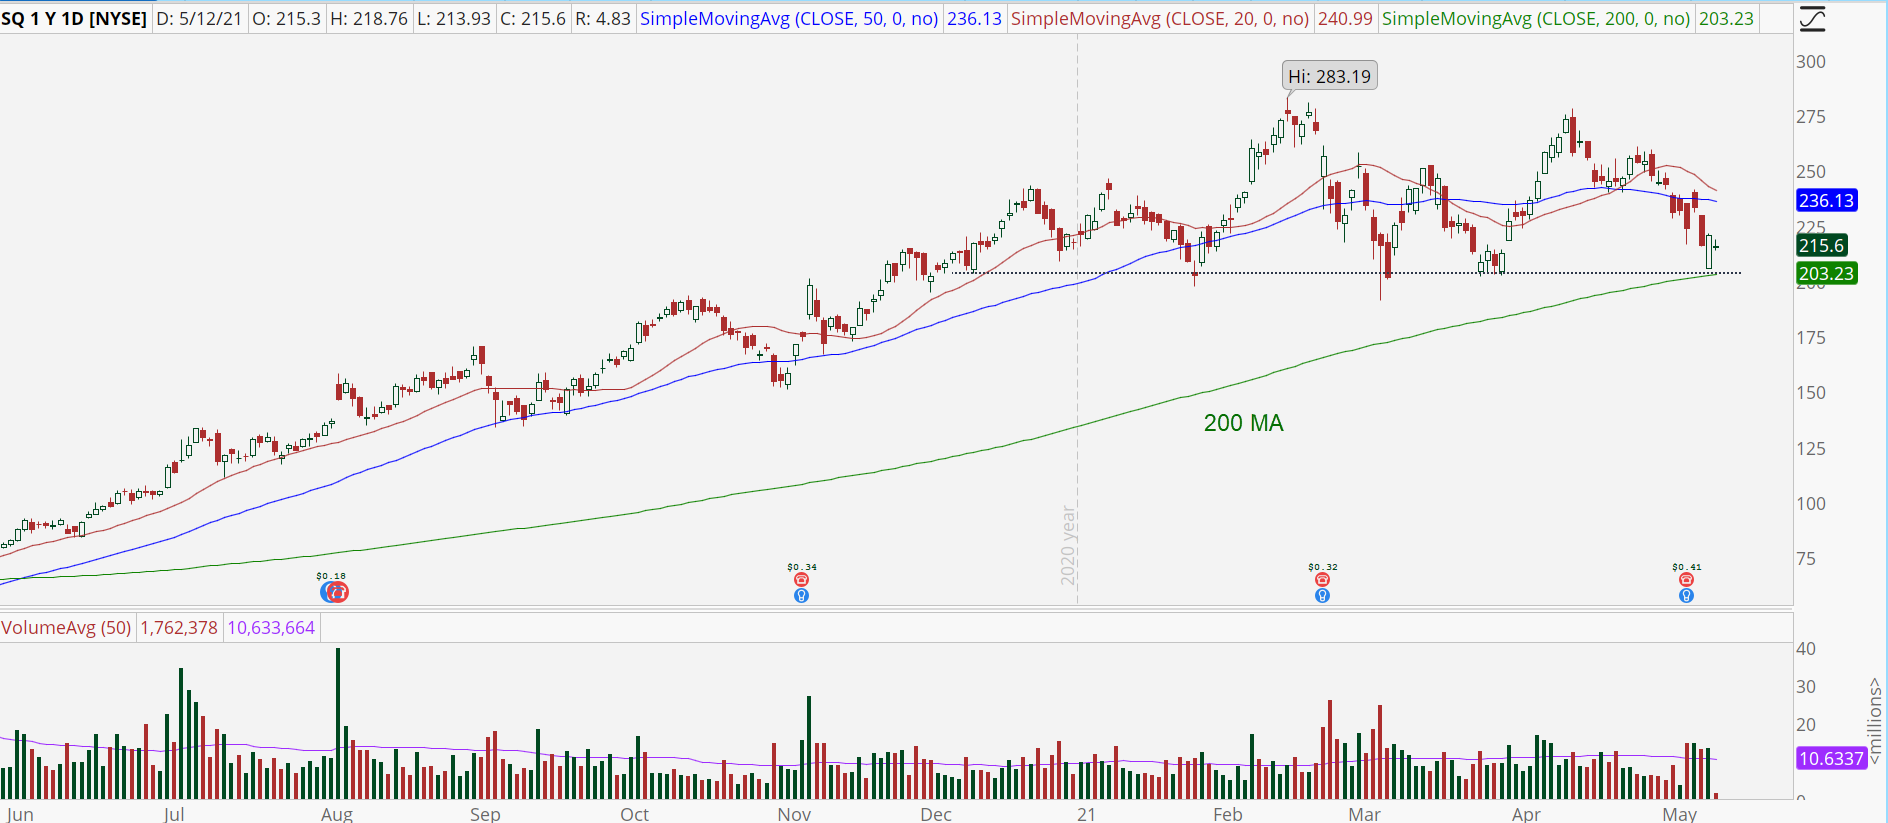 Square (SQ) stock chart with potential support bounce